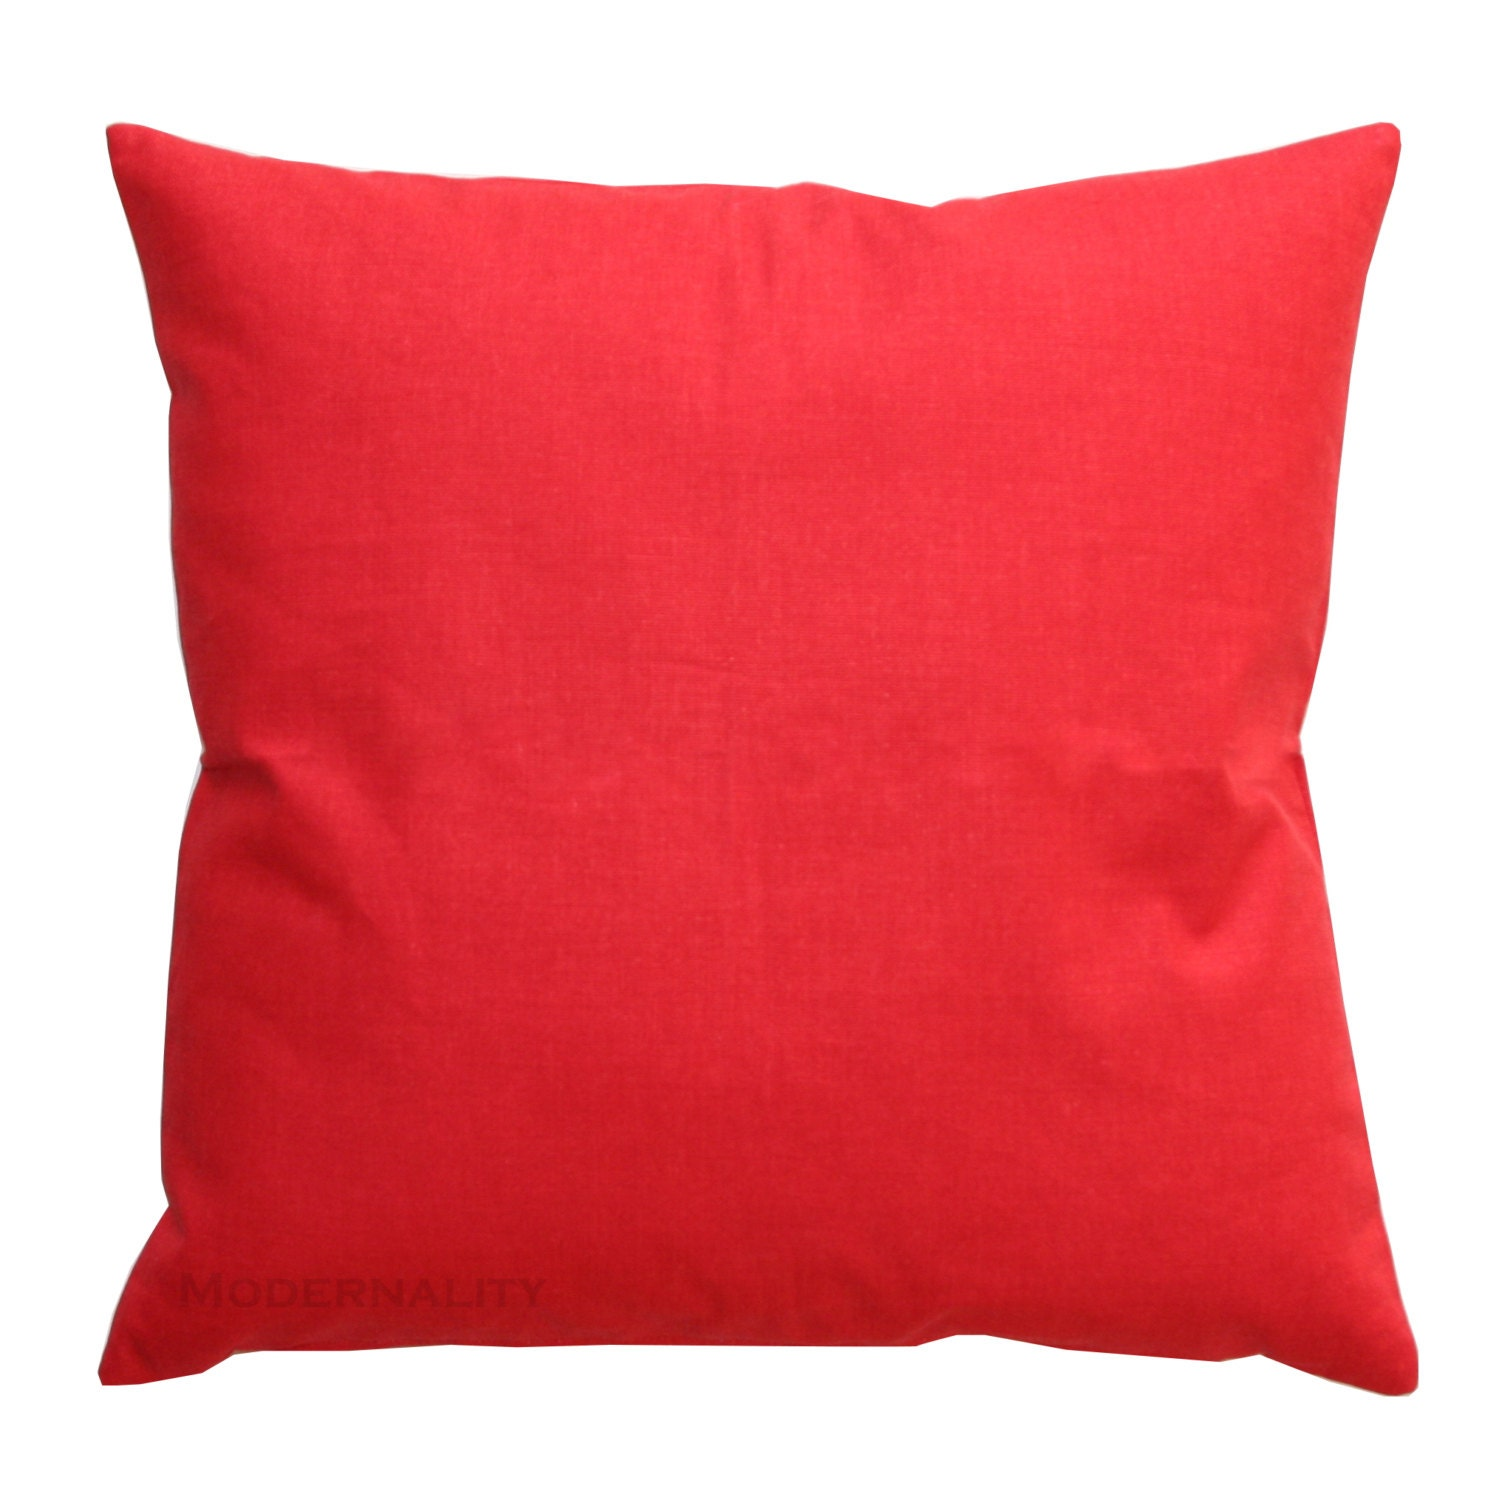 Clearance Solid Toss Pillows Bright Red Solid By Modernality2